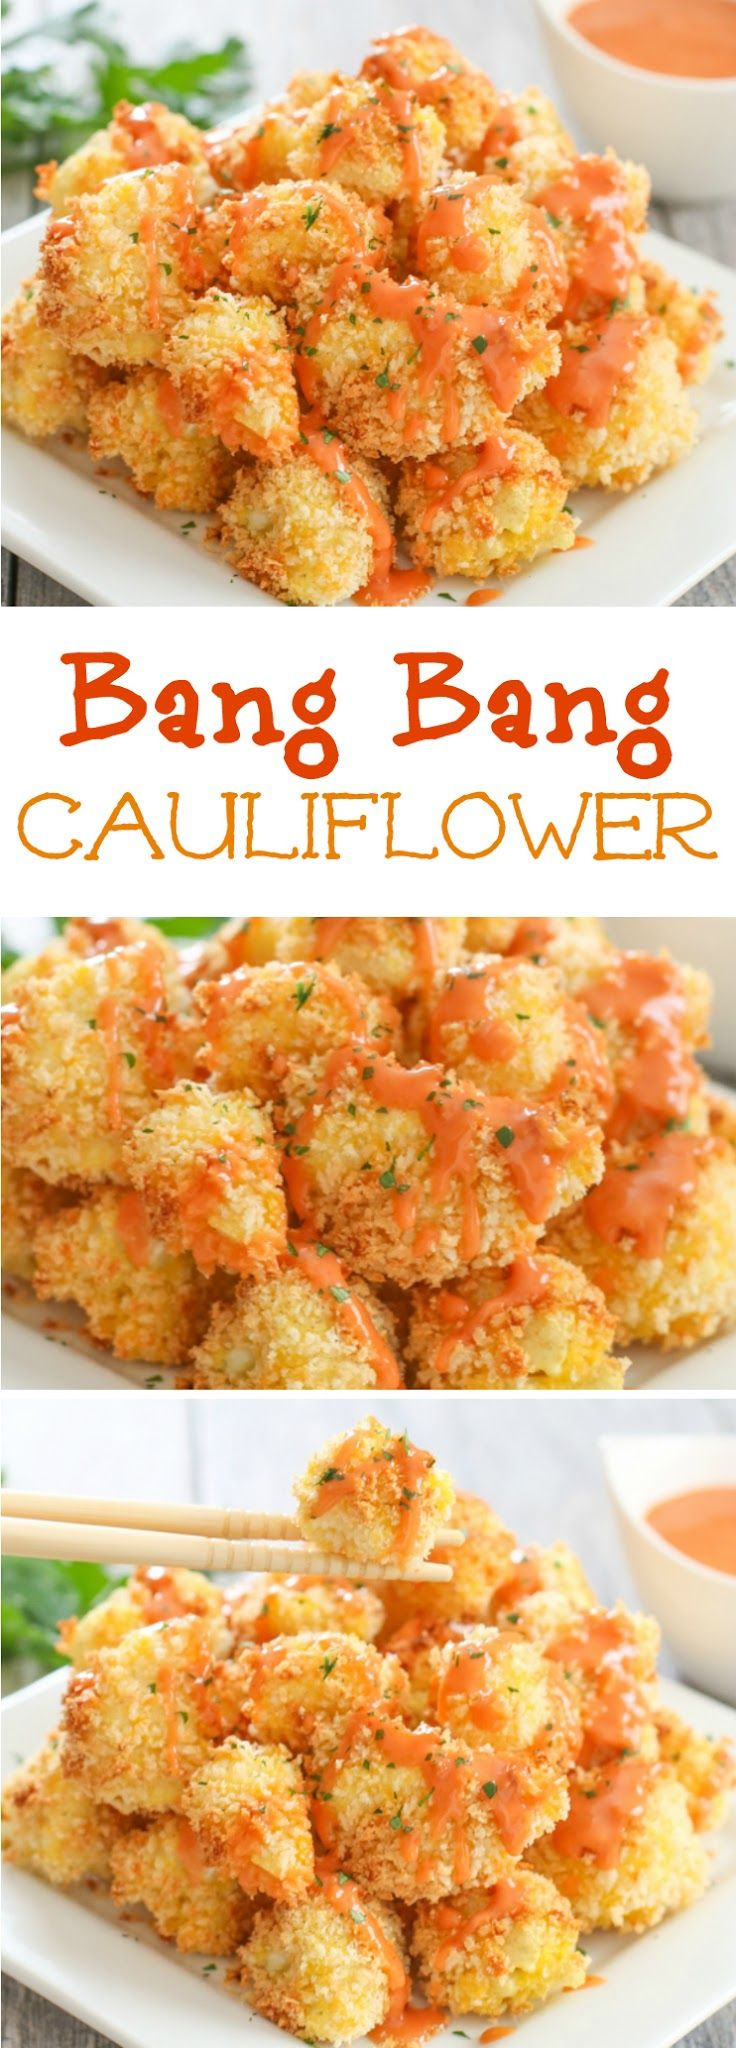 Bang Bang Cauliflower. This sauce is so addicting and easy! | Kirbie's Cravings